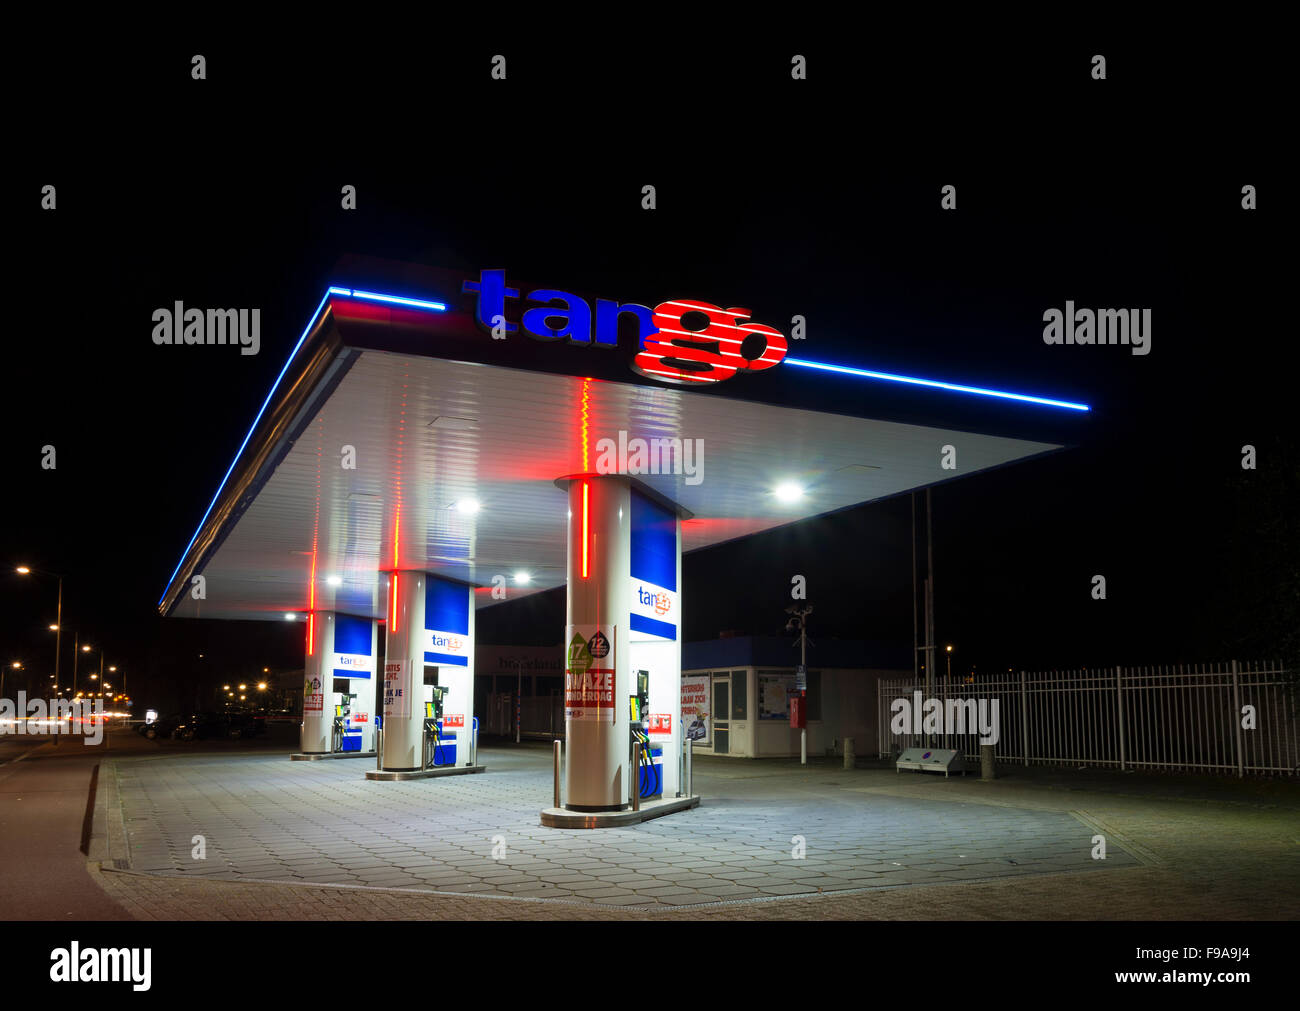 Oldenzaal netherlands february 28 2015 tango gas station at stock photo royalty free image - Oldenzaal mobel ...